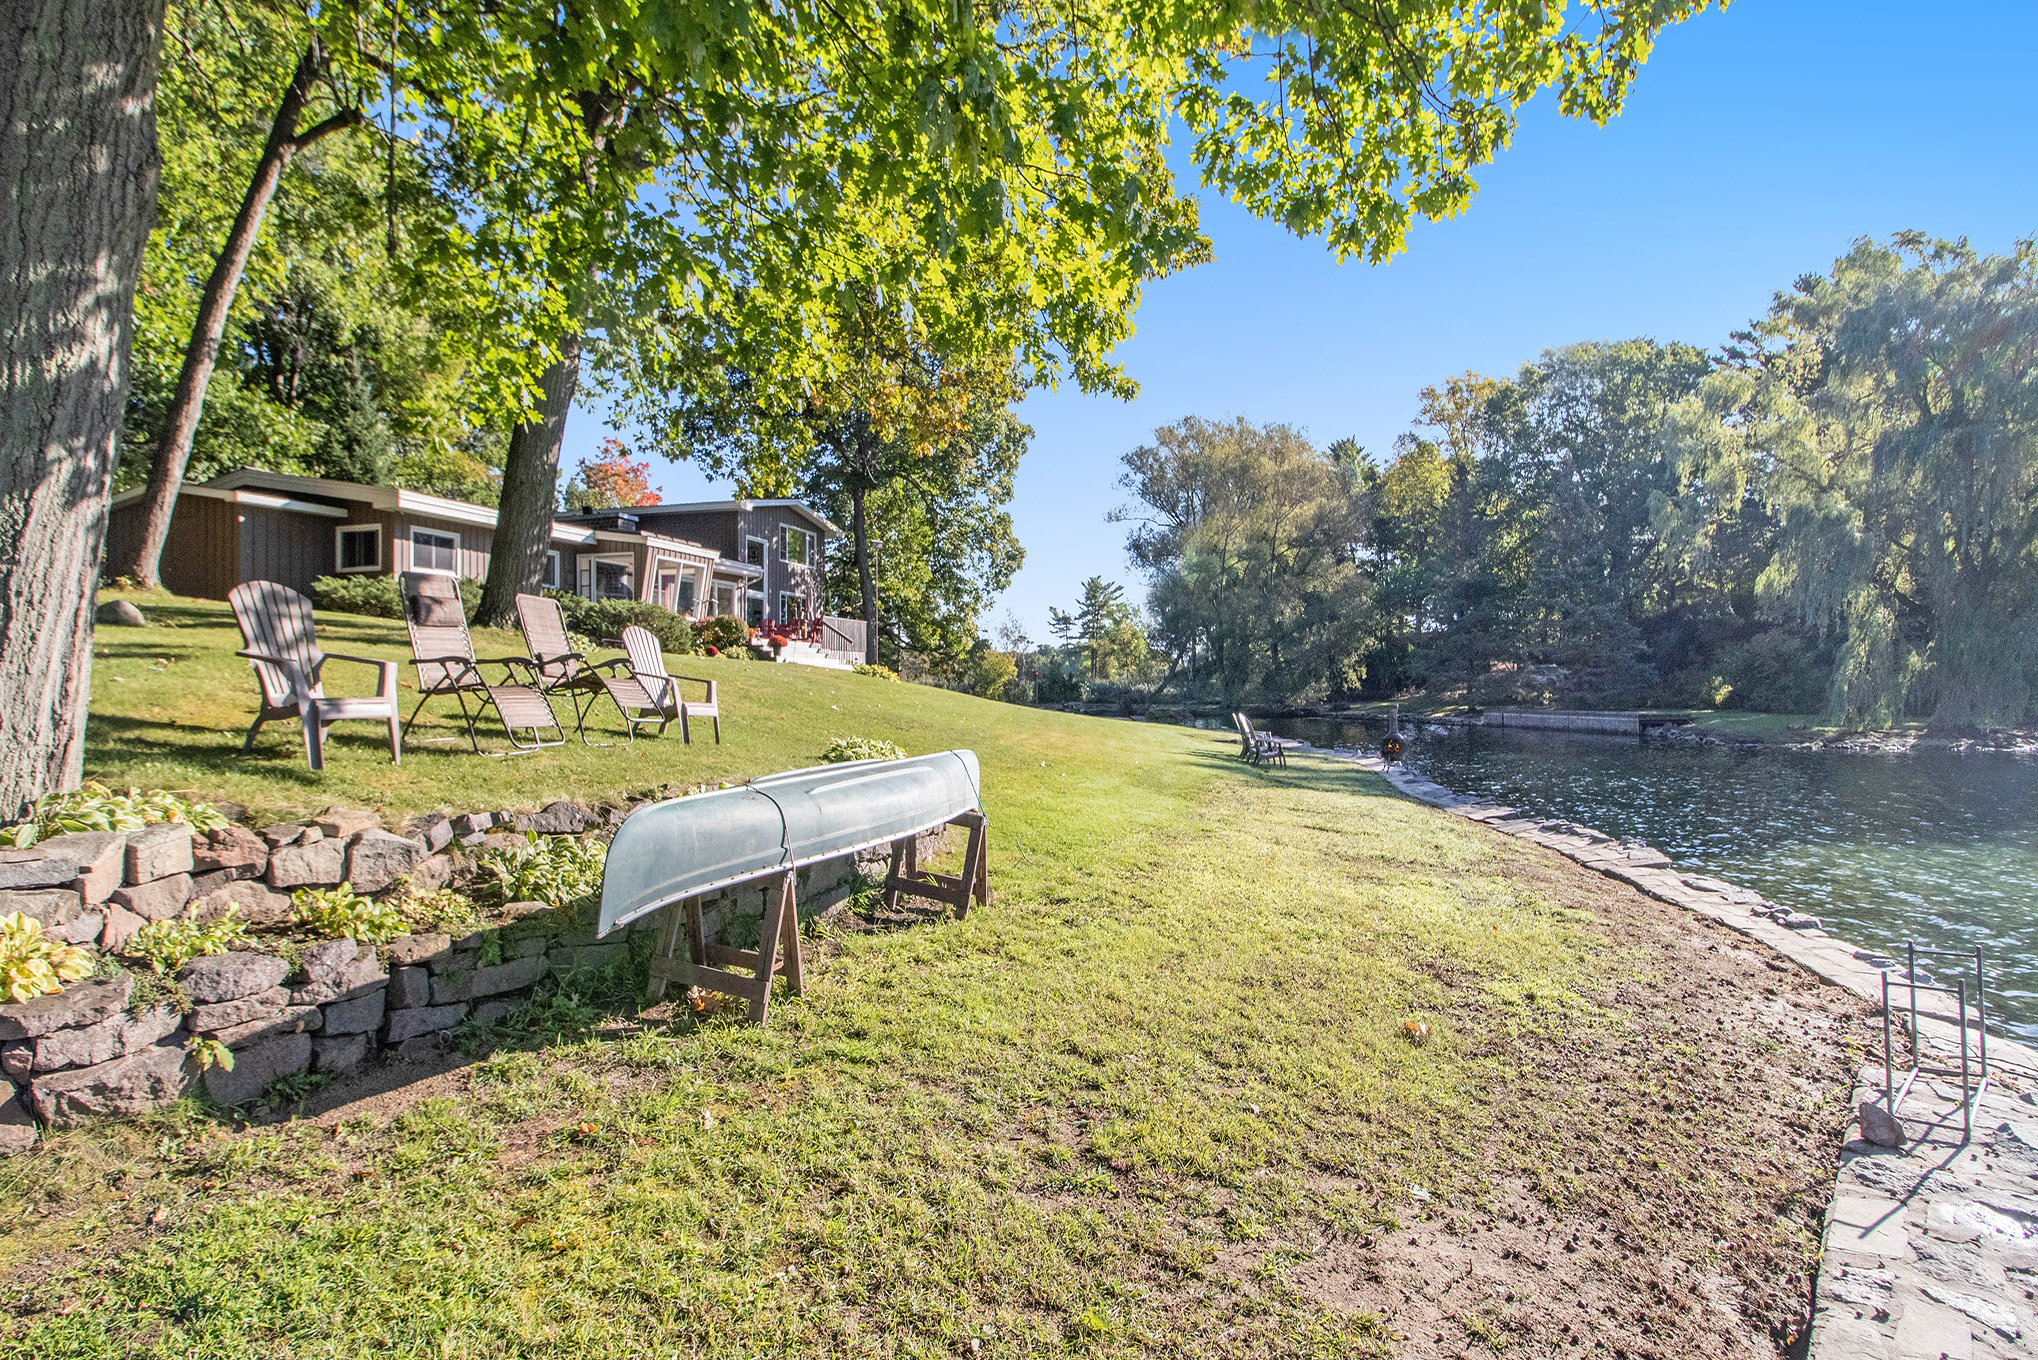 You simply can't beat this yard space down by the water.  NEVER flooded over to date, loads of grass for the kids and animals to run and play, fire pits, 40 foot dock and families of ducks and swans that come on the regular